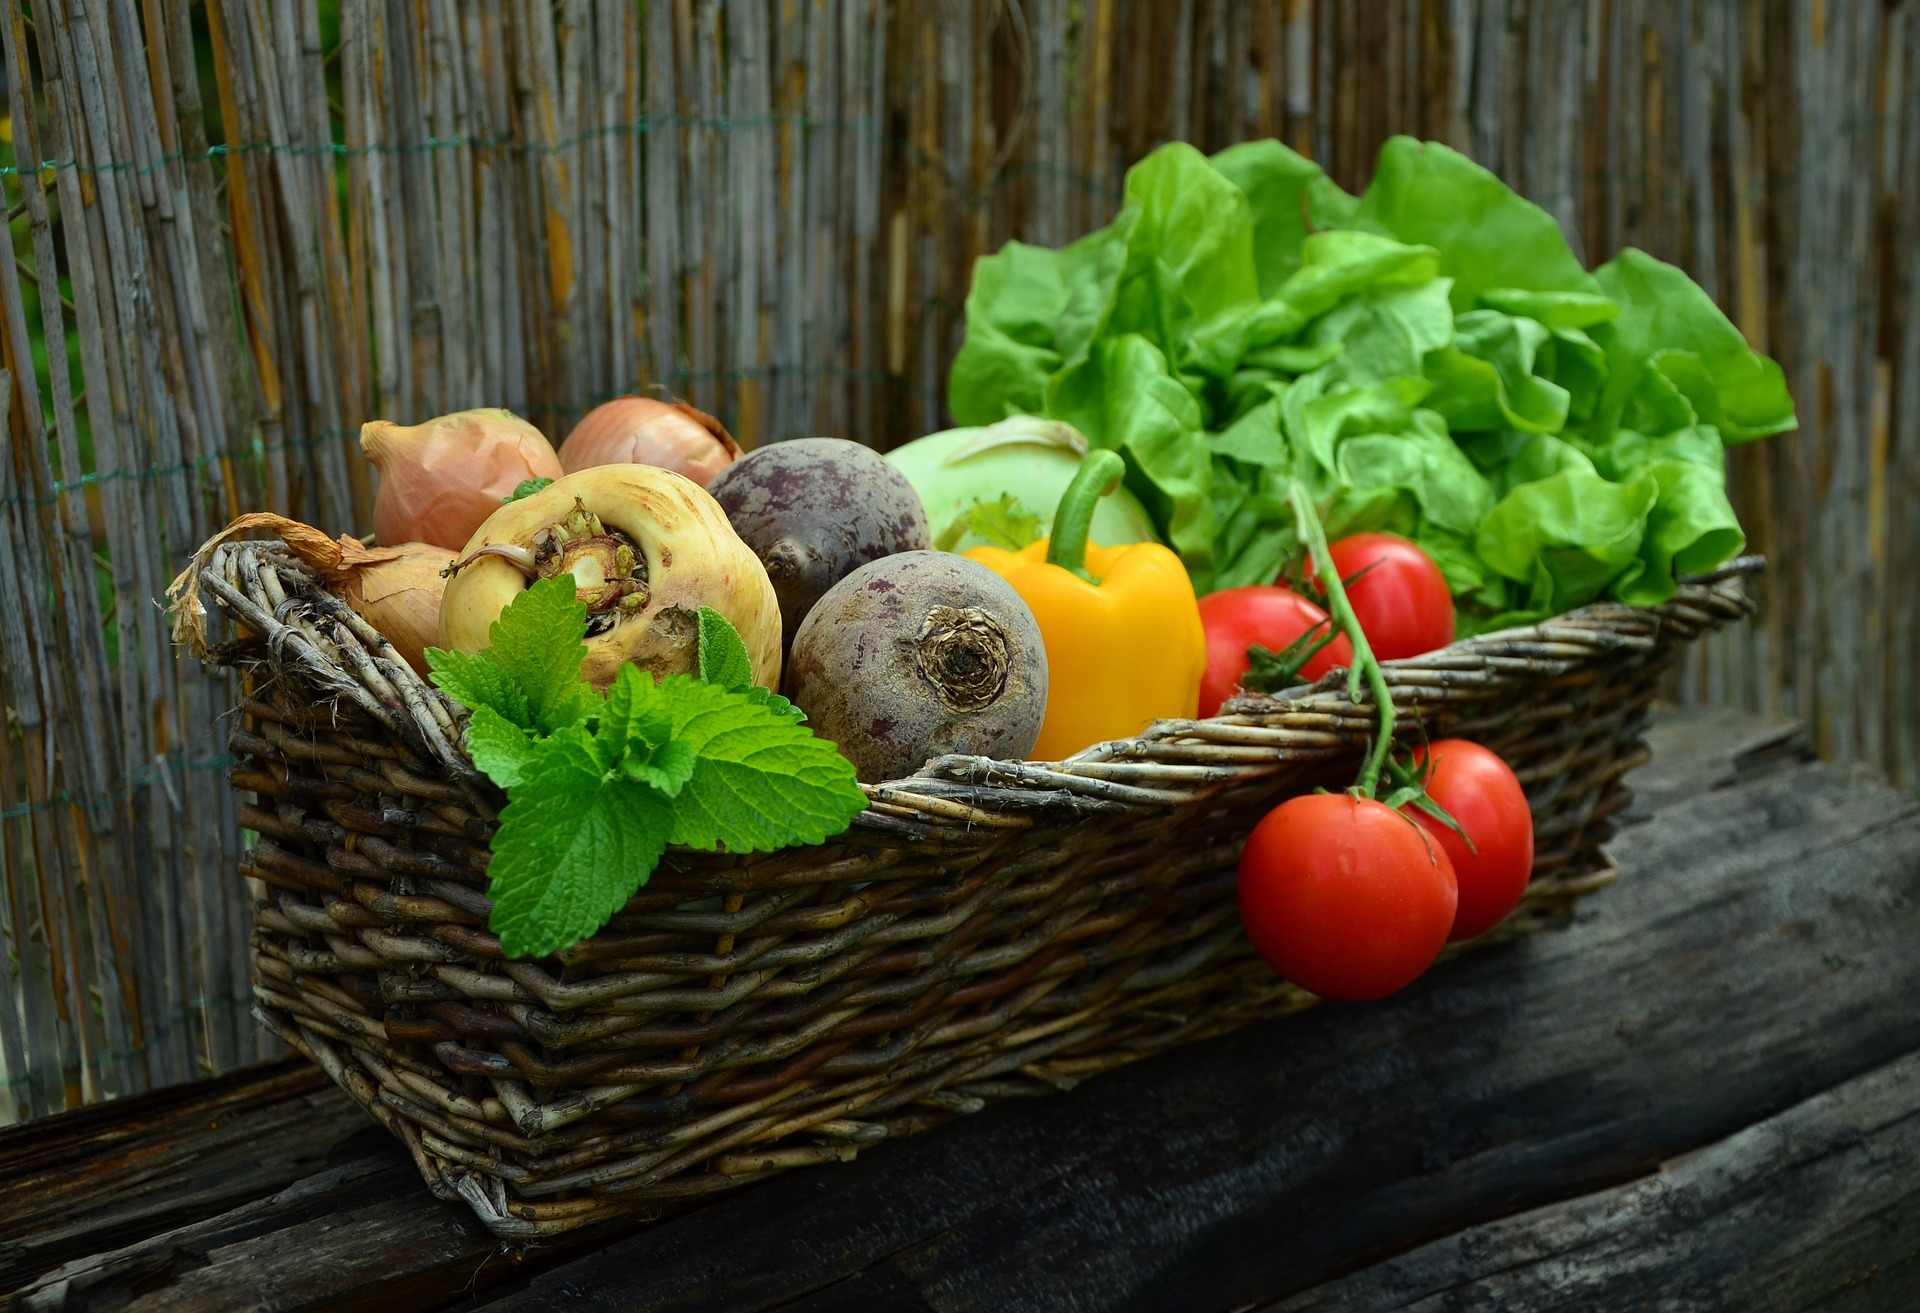 Benefits of Organic food like tomatoes, lettus, beets...